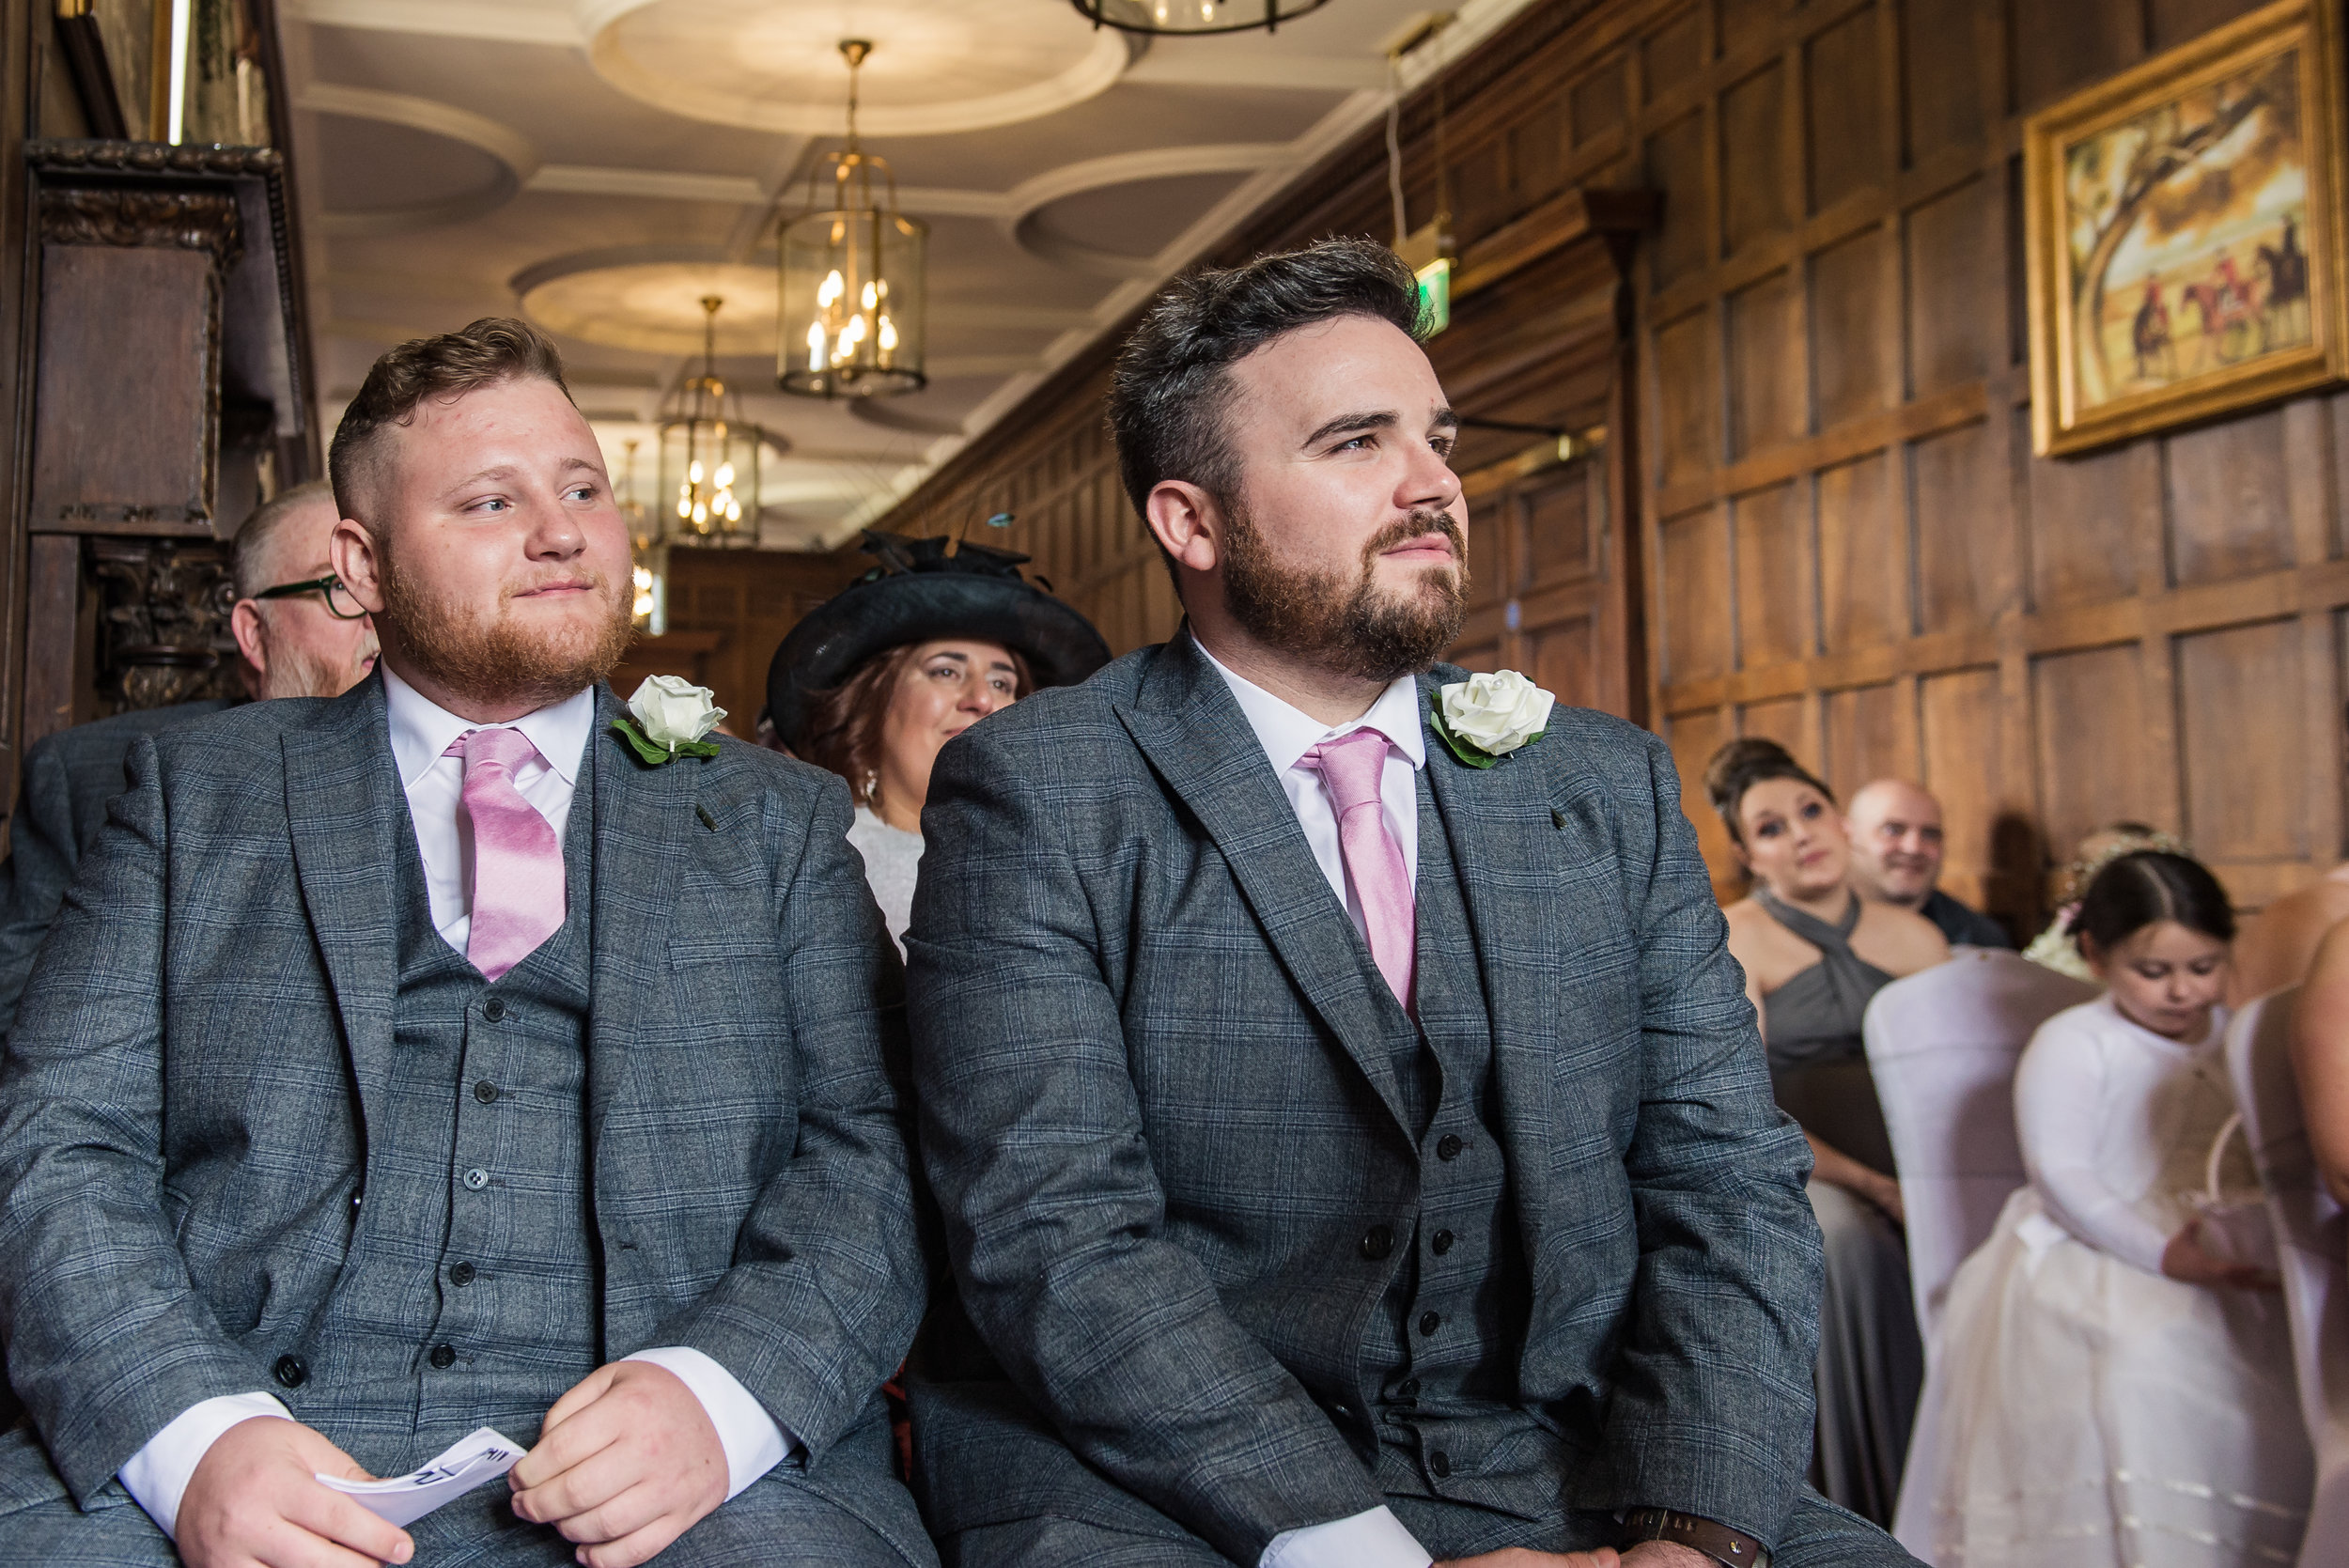 castle Bromwich hall hotel wedding photography awaiting the arrival of the bride